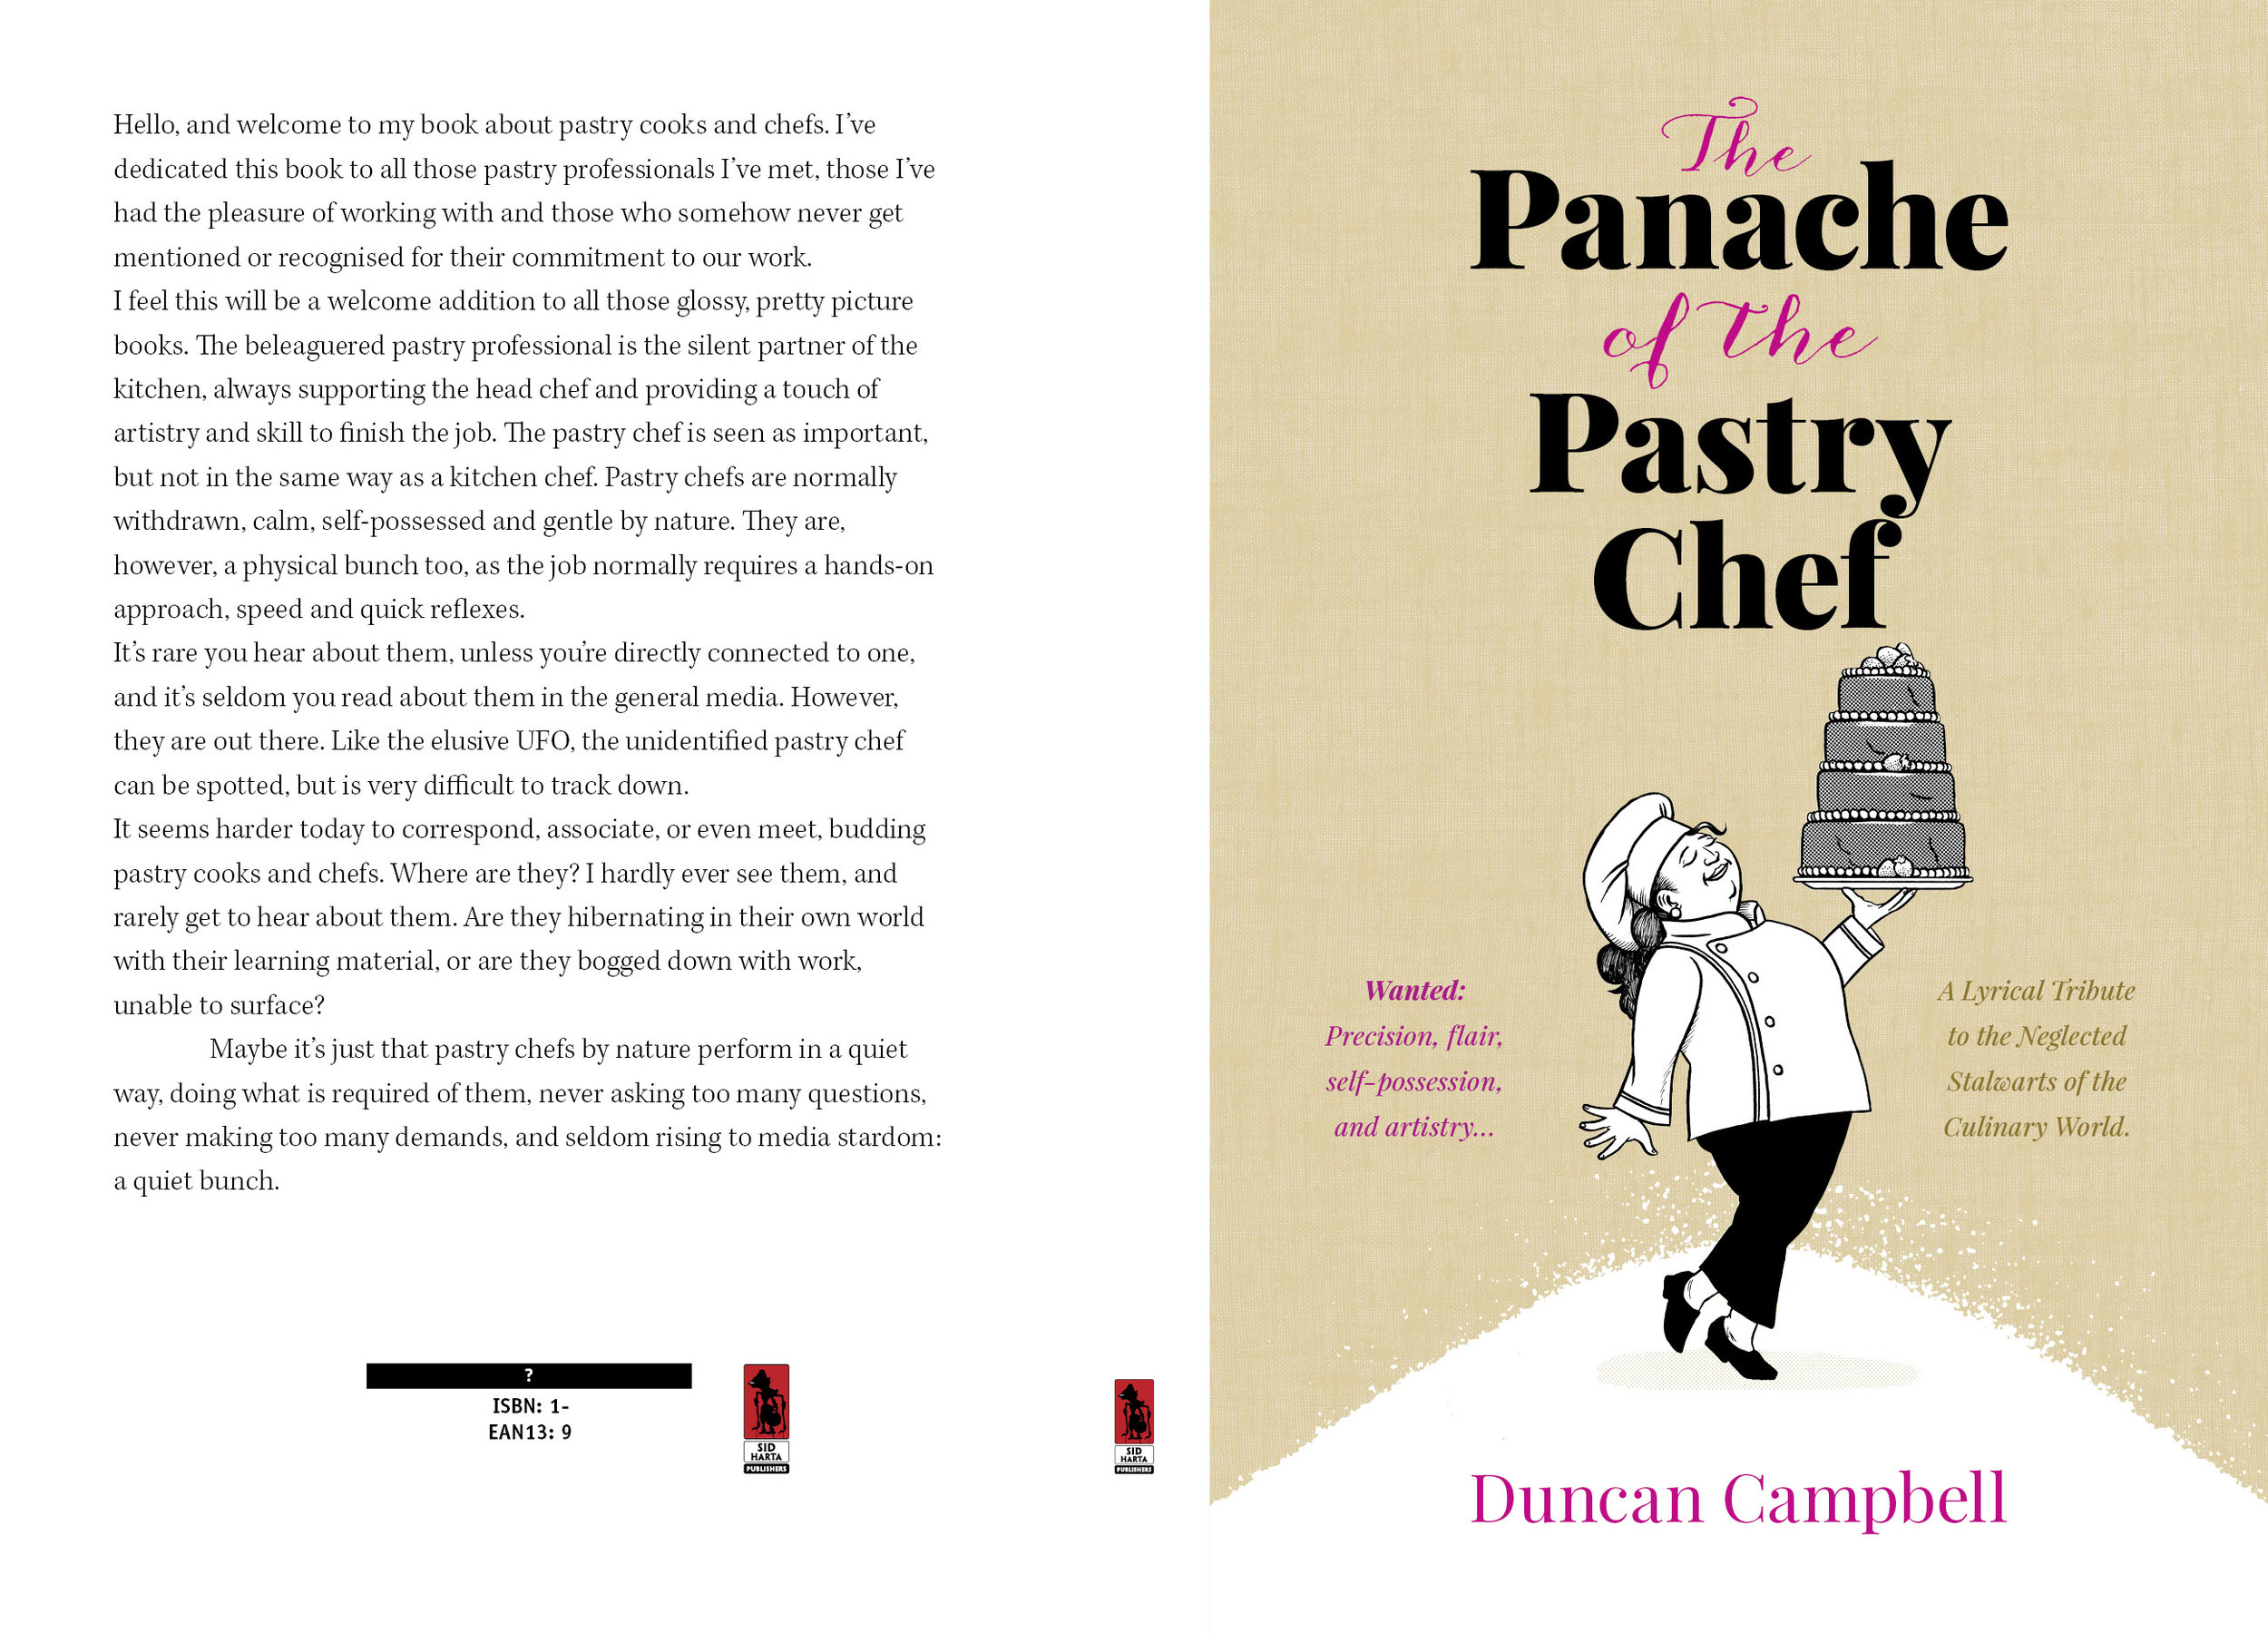 Panache of Pastry Chefs_cover pages.jpg